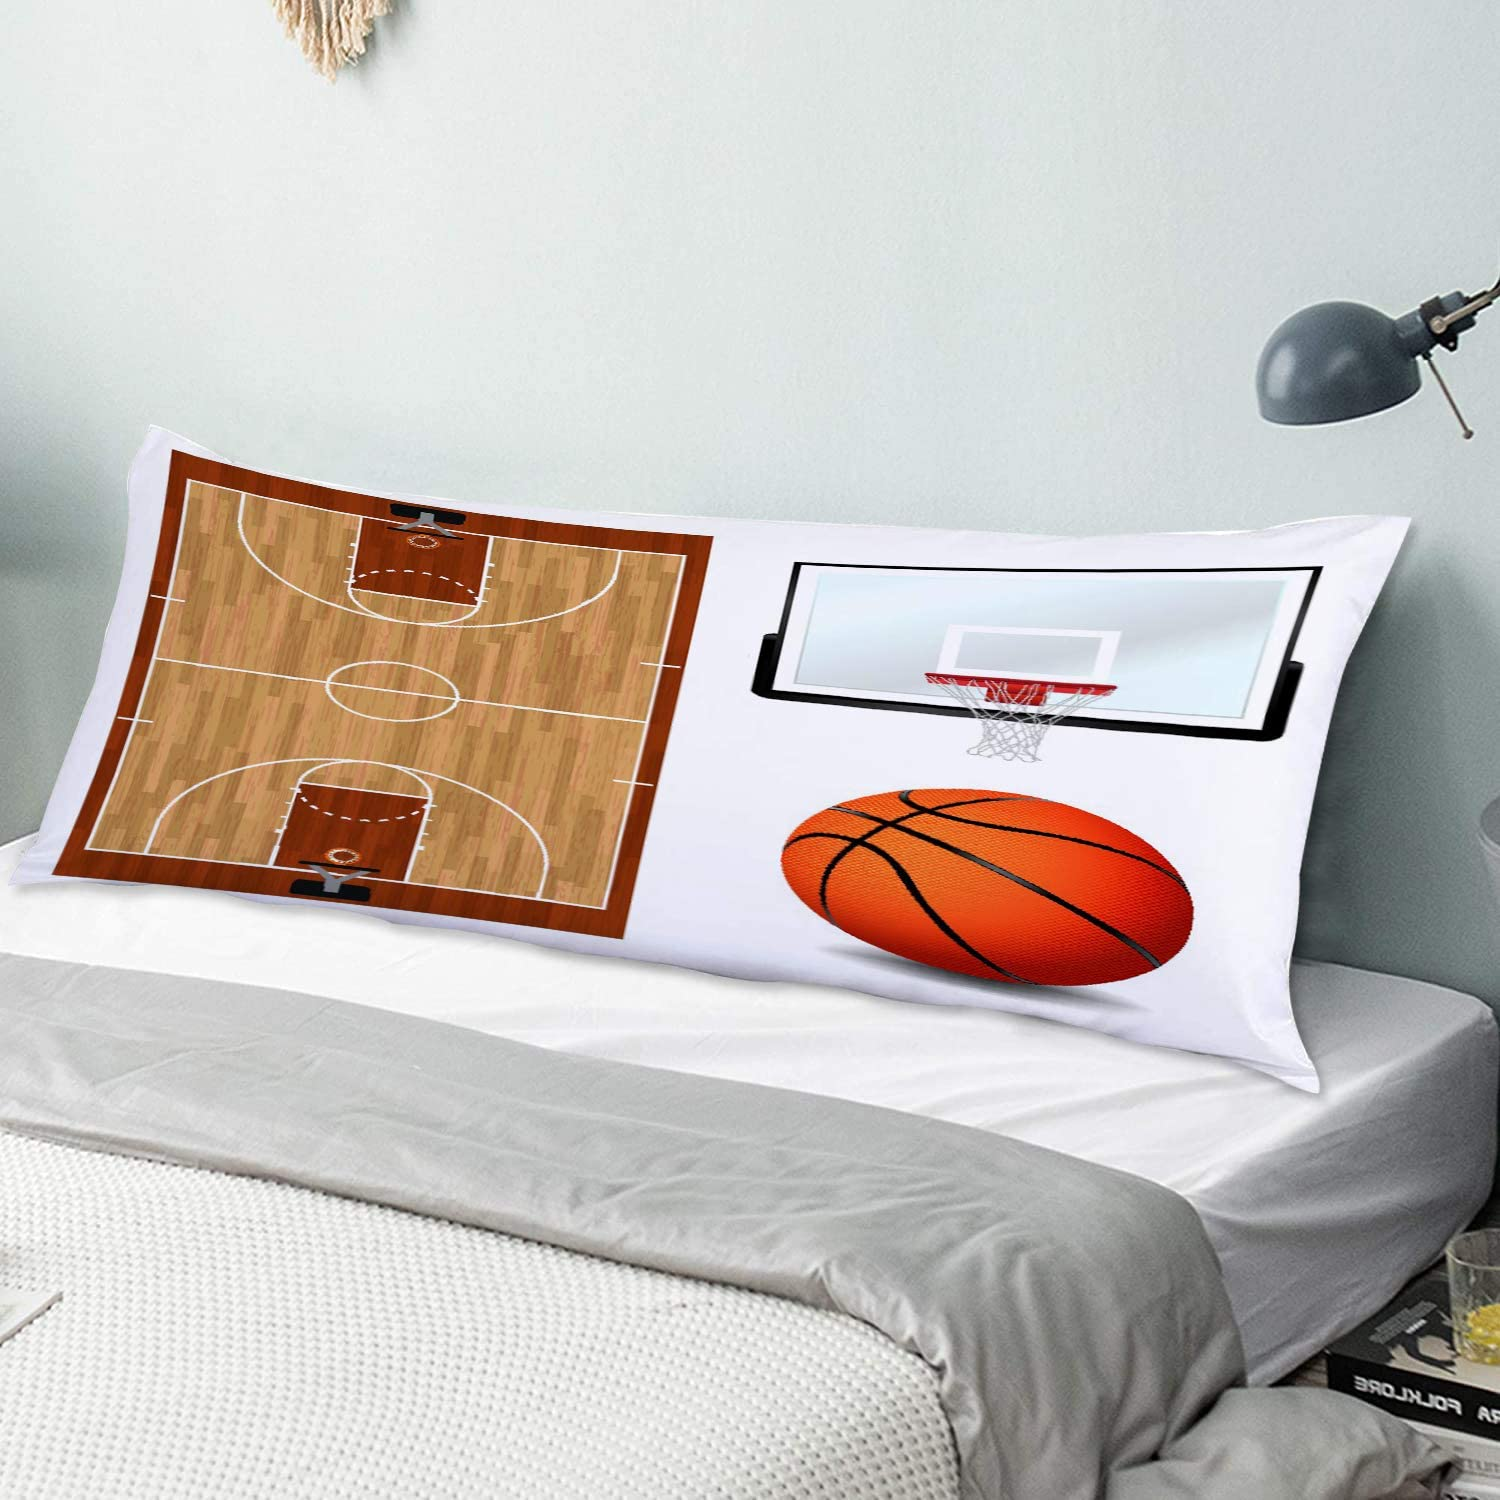 KENADVI Body Pillow Cover Basketball Backboard Court Pillowcase Special price for National uniform free shipping a limited time